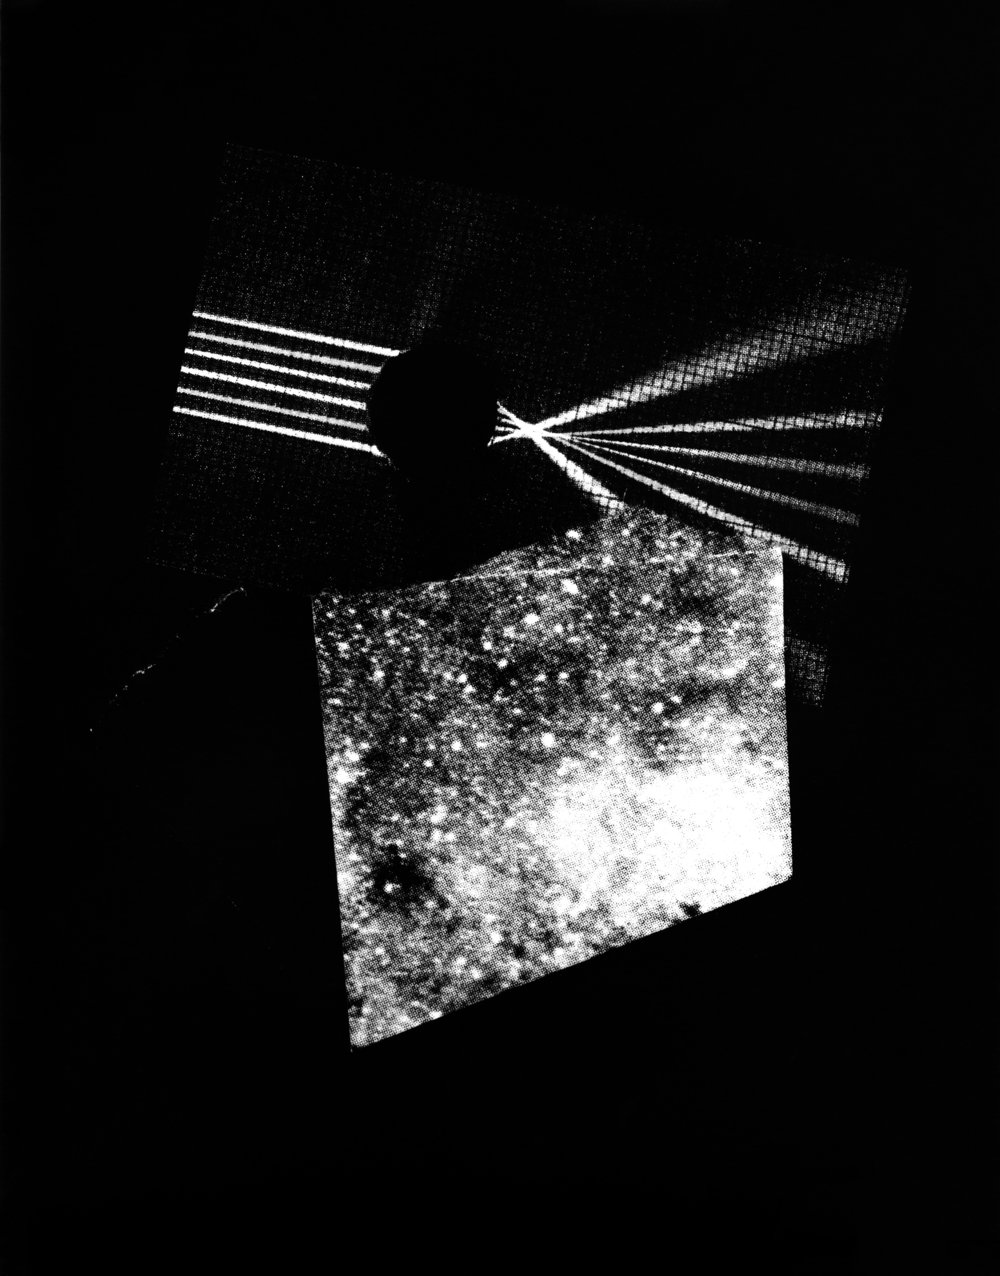 rearrangements_growleryphotograms_0004.jpg